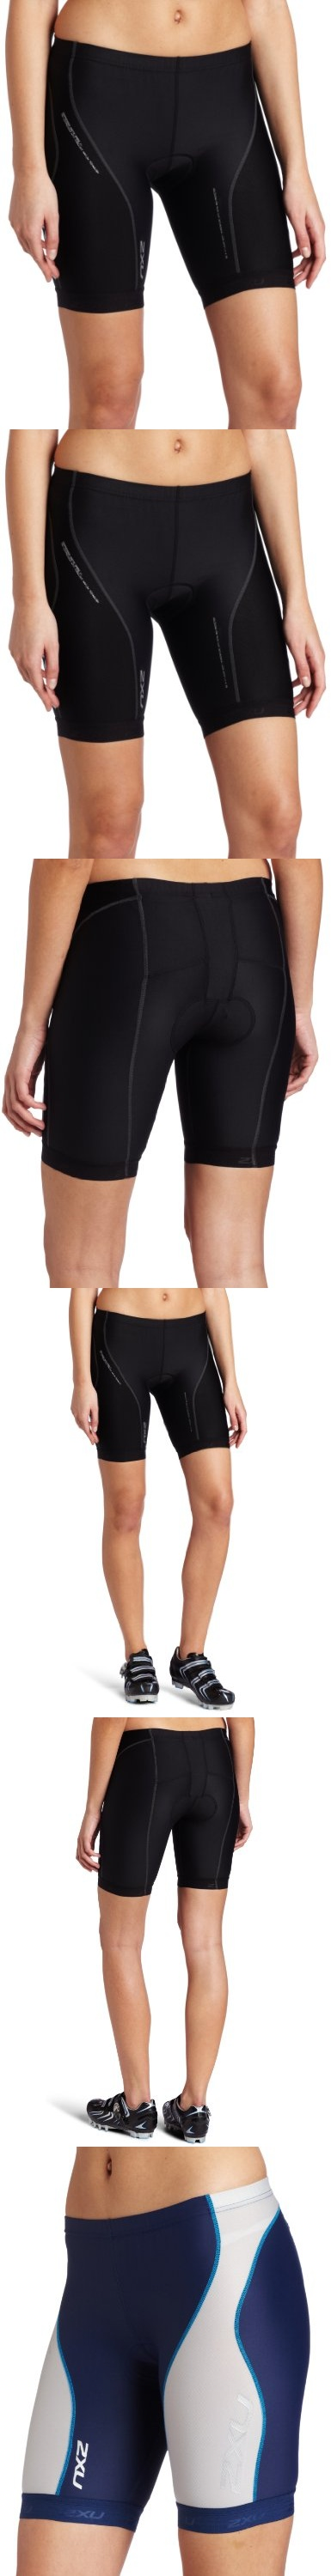 2XU Women's Long Distance Tri Shorts - This 2XU Long Distance Tri Short boast the compressive yet breathable properties of 2XU's revolutionary ICE X fabric.  Coupled with 2XU's 70D KINETIC SPEED  fabric with dimpled airflow technology and ... - Active Shorts - Sporting Goods -